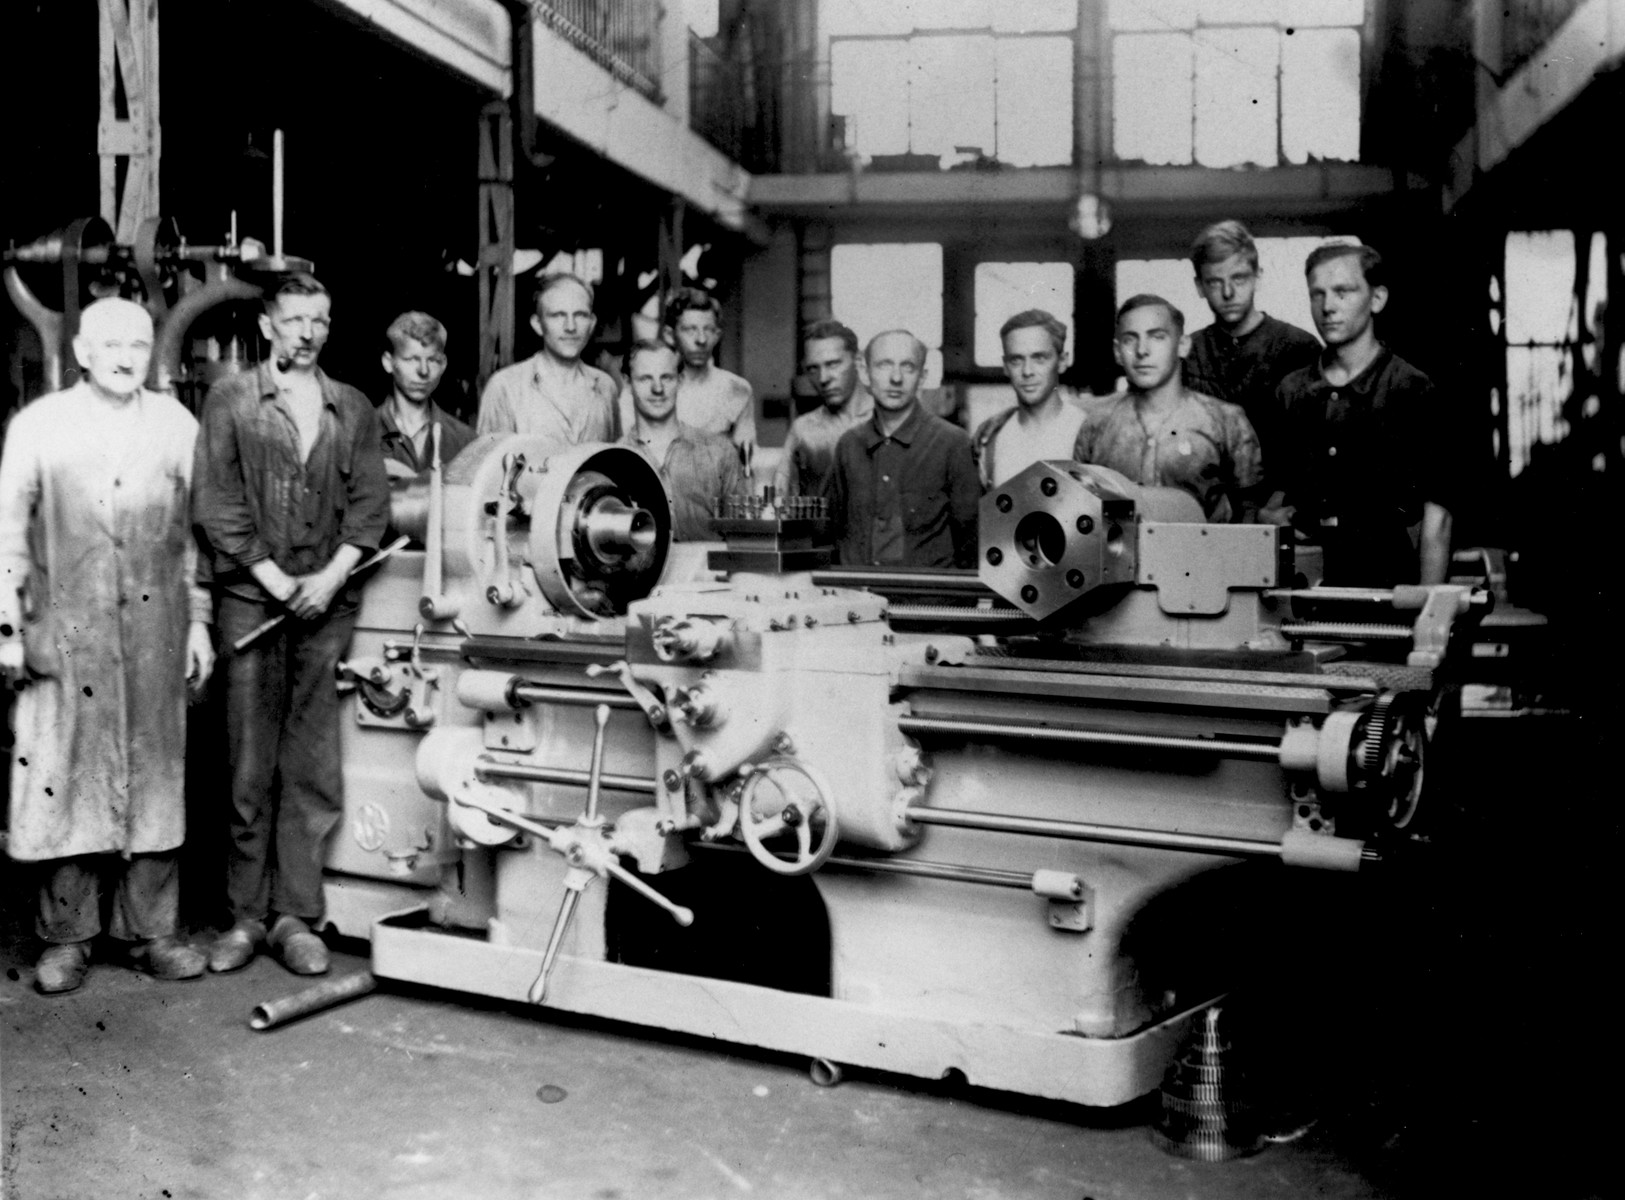 Erwin Jacobowitz (third from the right) as an apprentice in the machine shop of the George Becksfeldt company in Berlin.